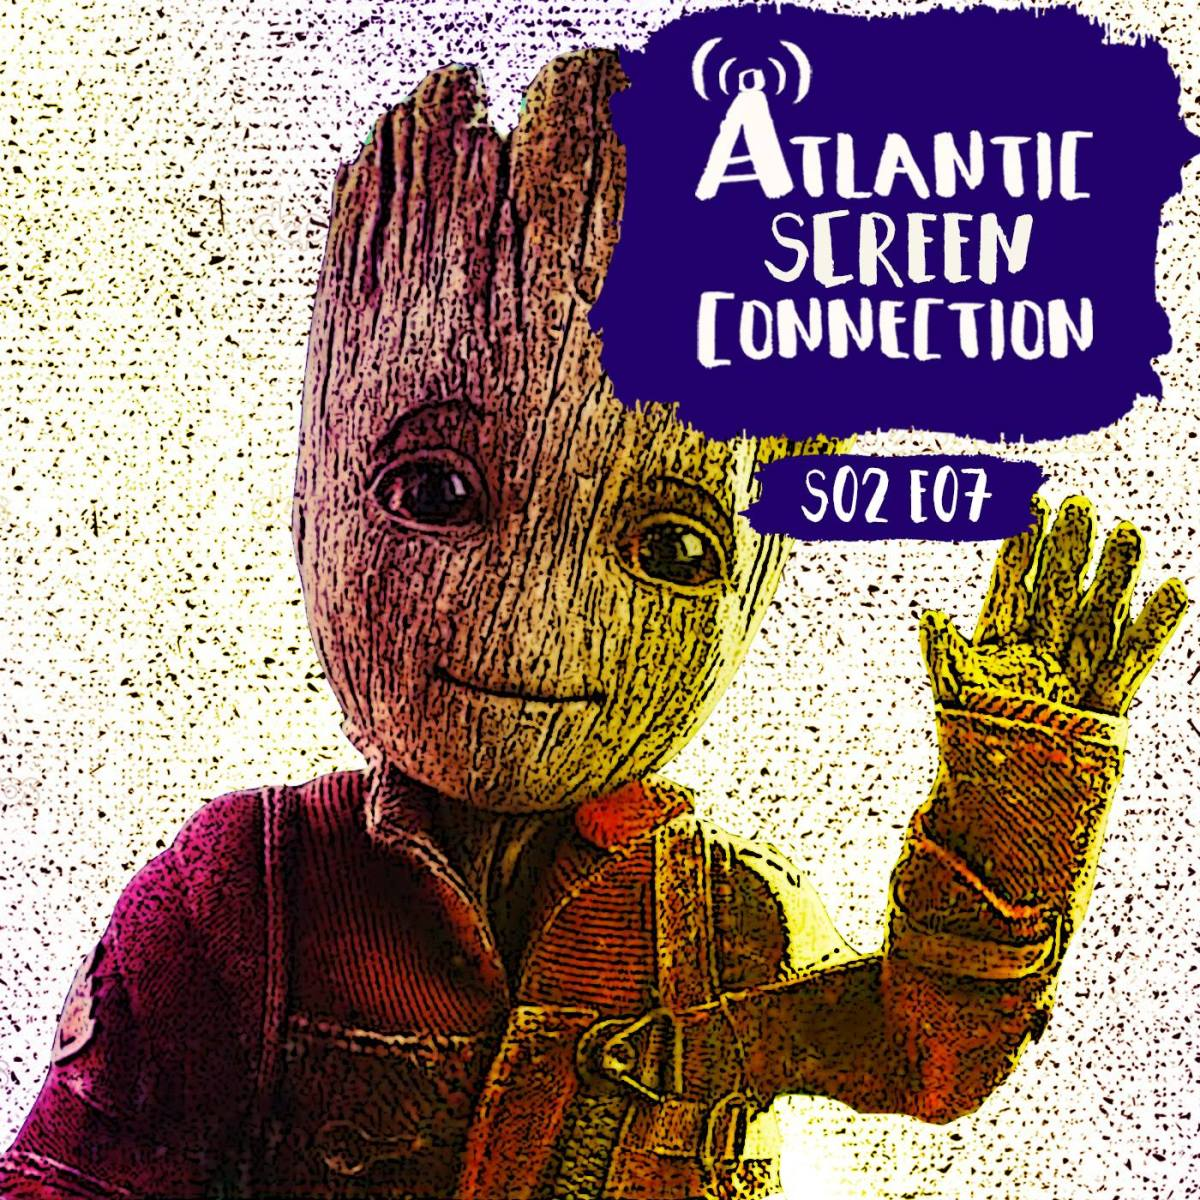 PODCAST: GUARDIANS OF THE GALAXY VOL. 2 (S02E07)